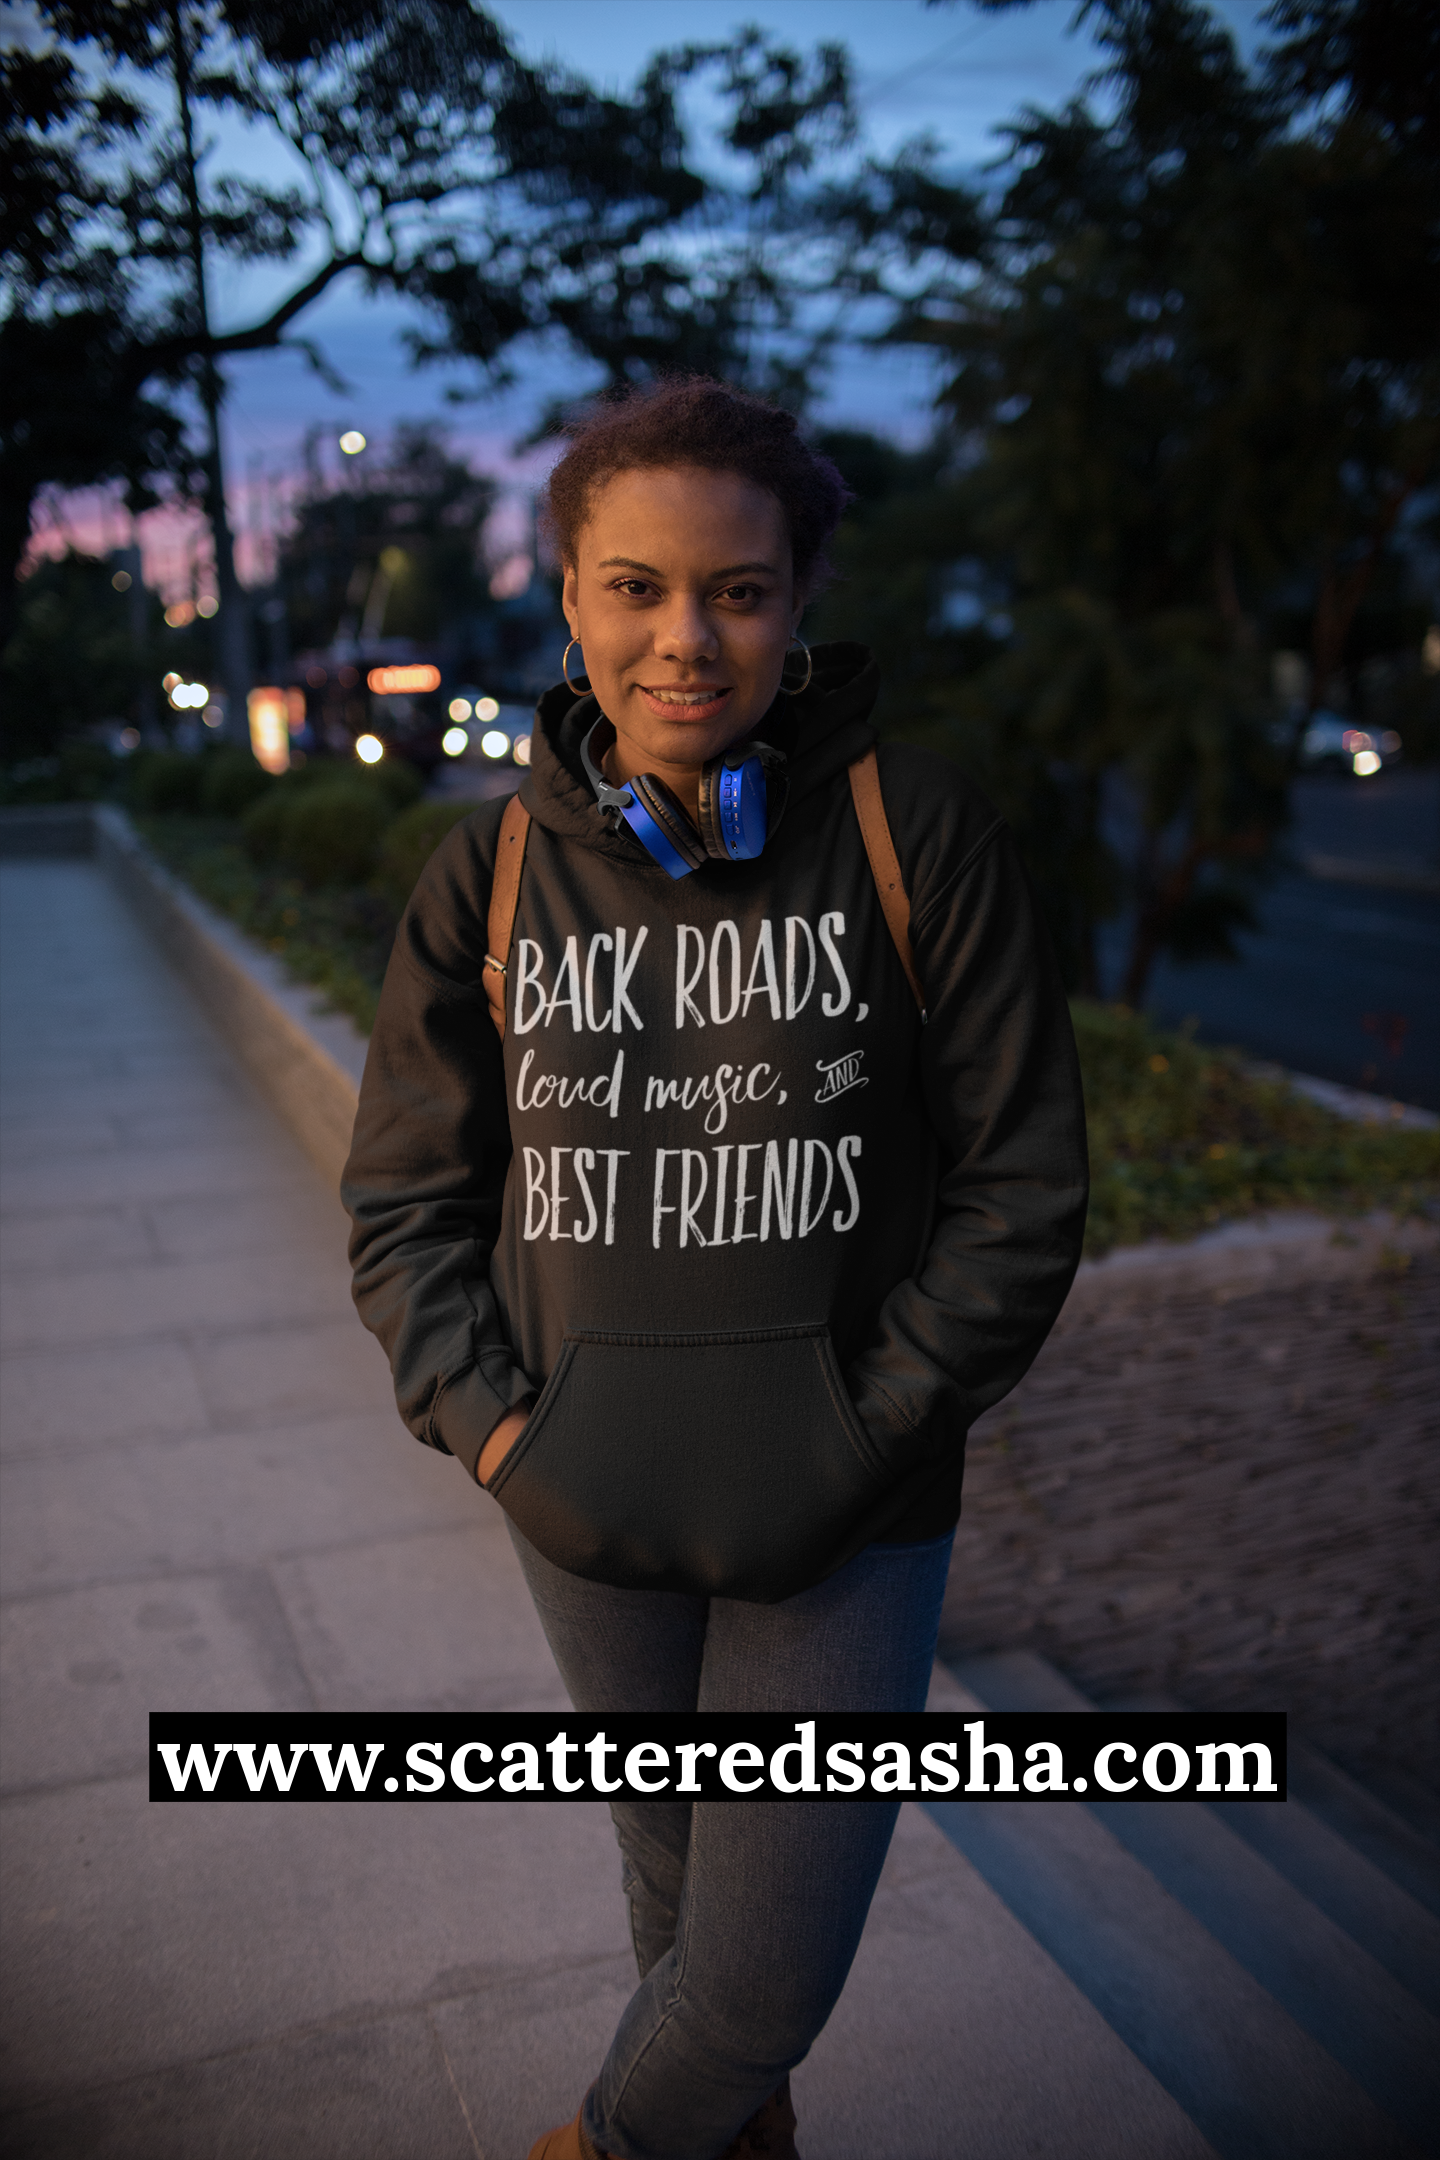 Promo - Back roads - hoodie young woman